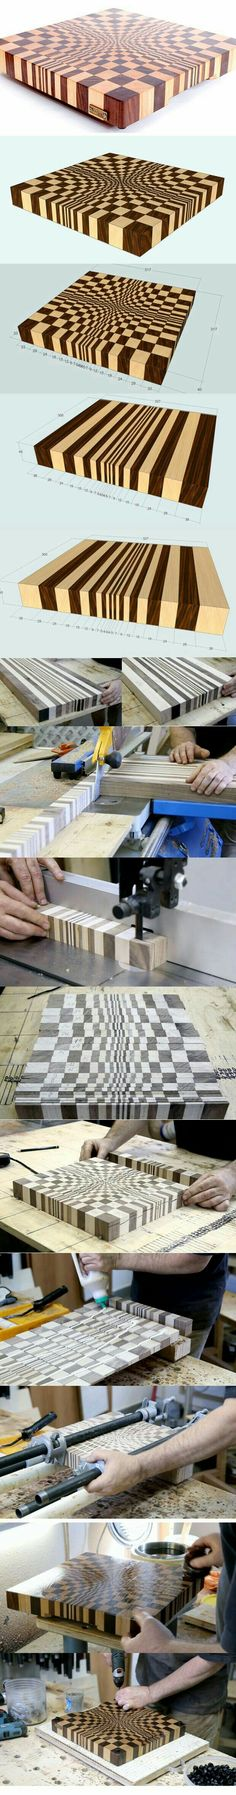 Patterns and Plans Used in Carpentry - Woodworking for Beginners